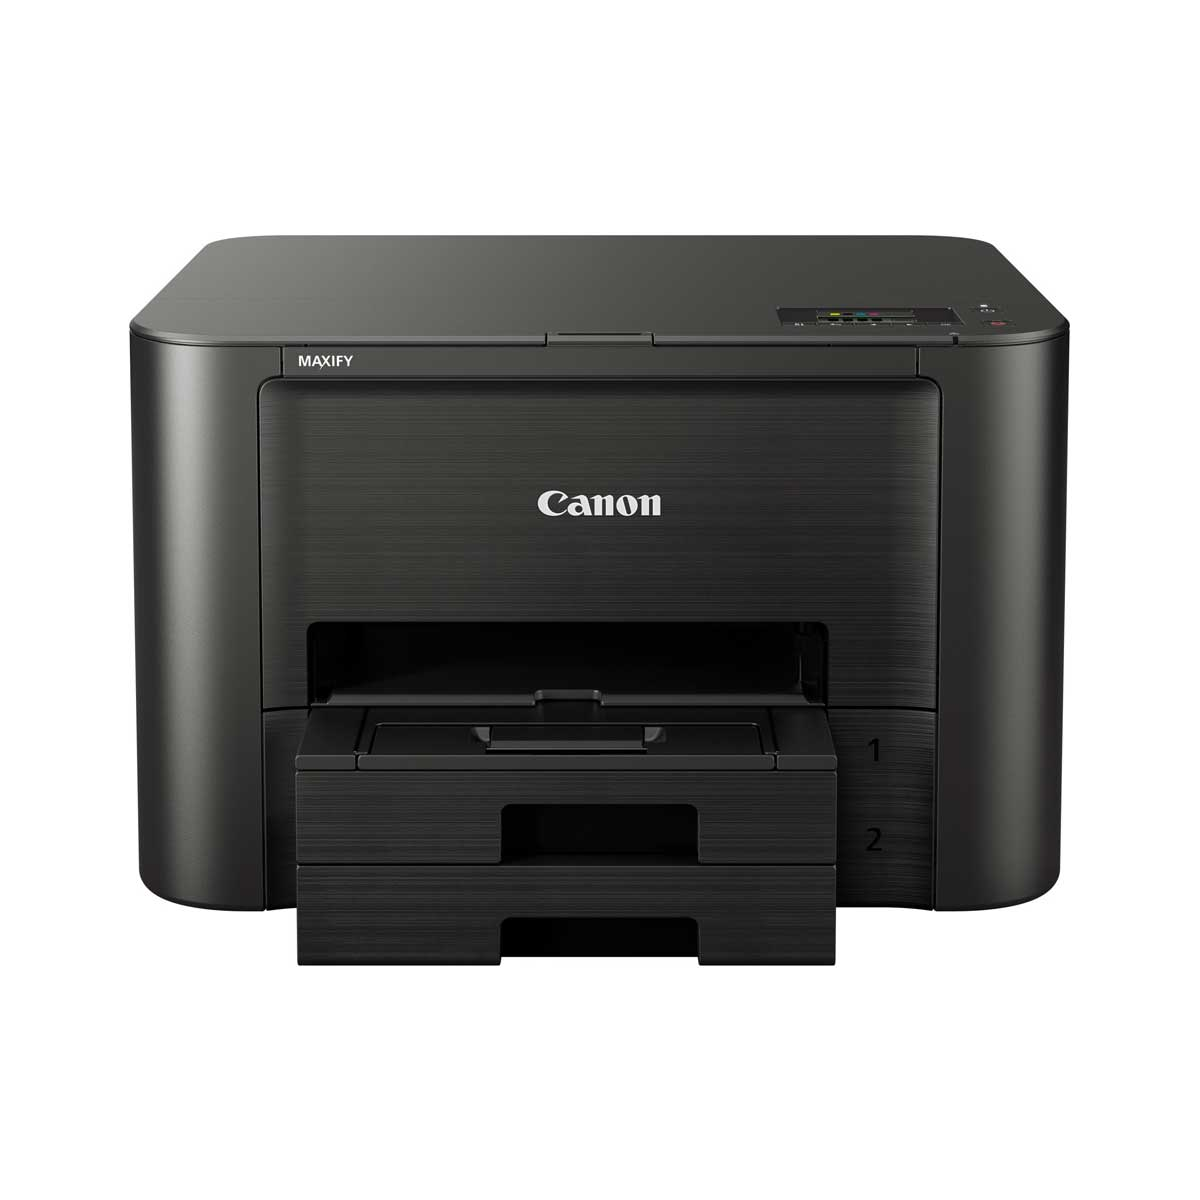 Canon MAXIFY iB4150 A4 Colour Inkjet Printer